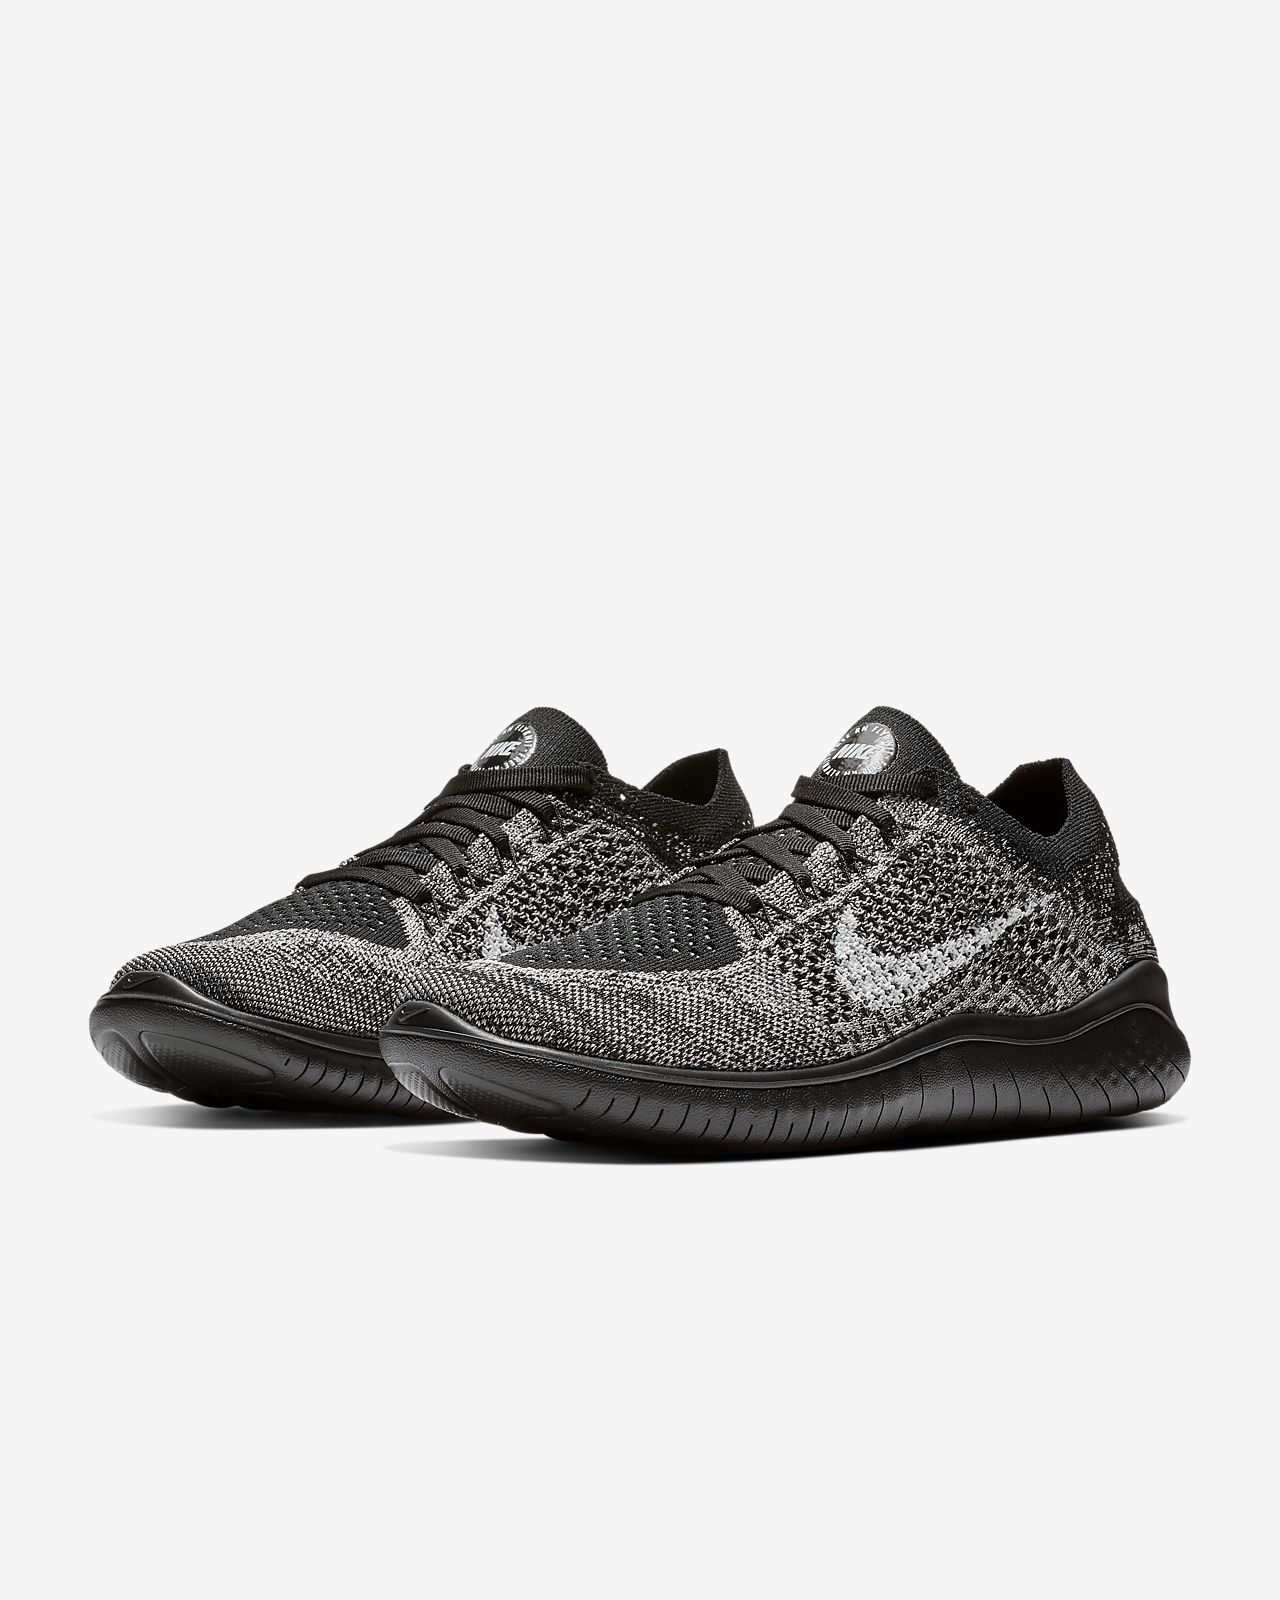 caa33d00a573b Low Resolution Nike Free RN Flyknit 2018 Women s Running Shoe Nike Free RN  Flyknit 2018 Women s Running Shoe